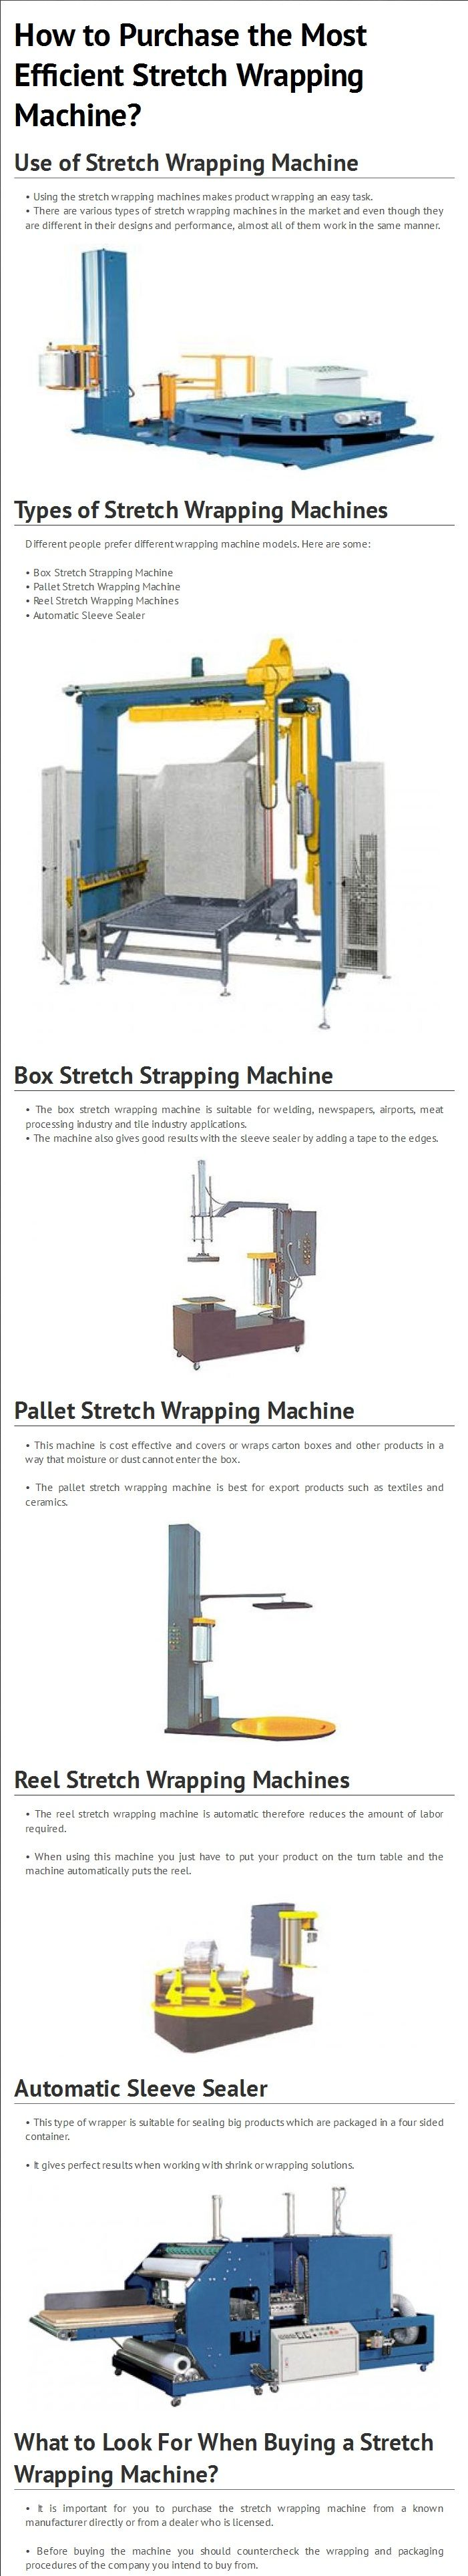 Utilizing the stretch wrapping machine makes product wrapping an easy job. Different types of stretch wrapping machine include Box Stretch Strapping Machine, Pallet Stretch Wrapping Machine, Reel Stretch Wrapping Machines, and Automatic Sleeve Sealer.  To know more about Stretch Wrapping Machine, kindly visit - http://www.multipackmachinery.com/stretch-wrapping-machine